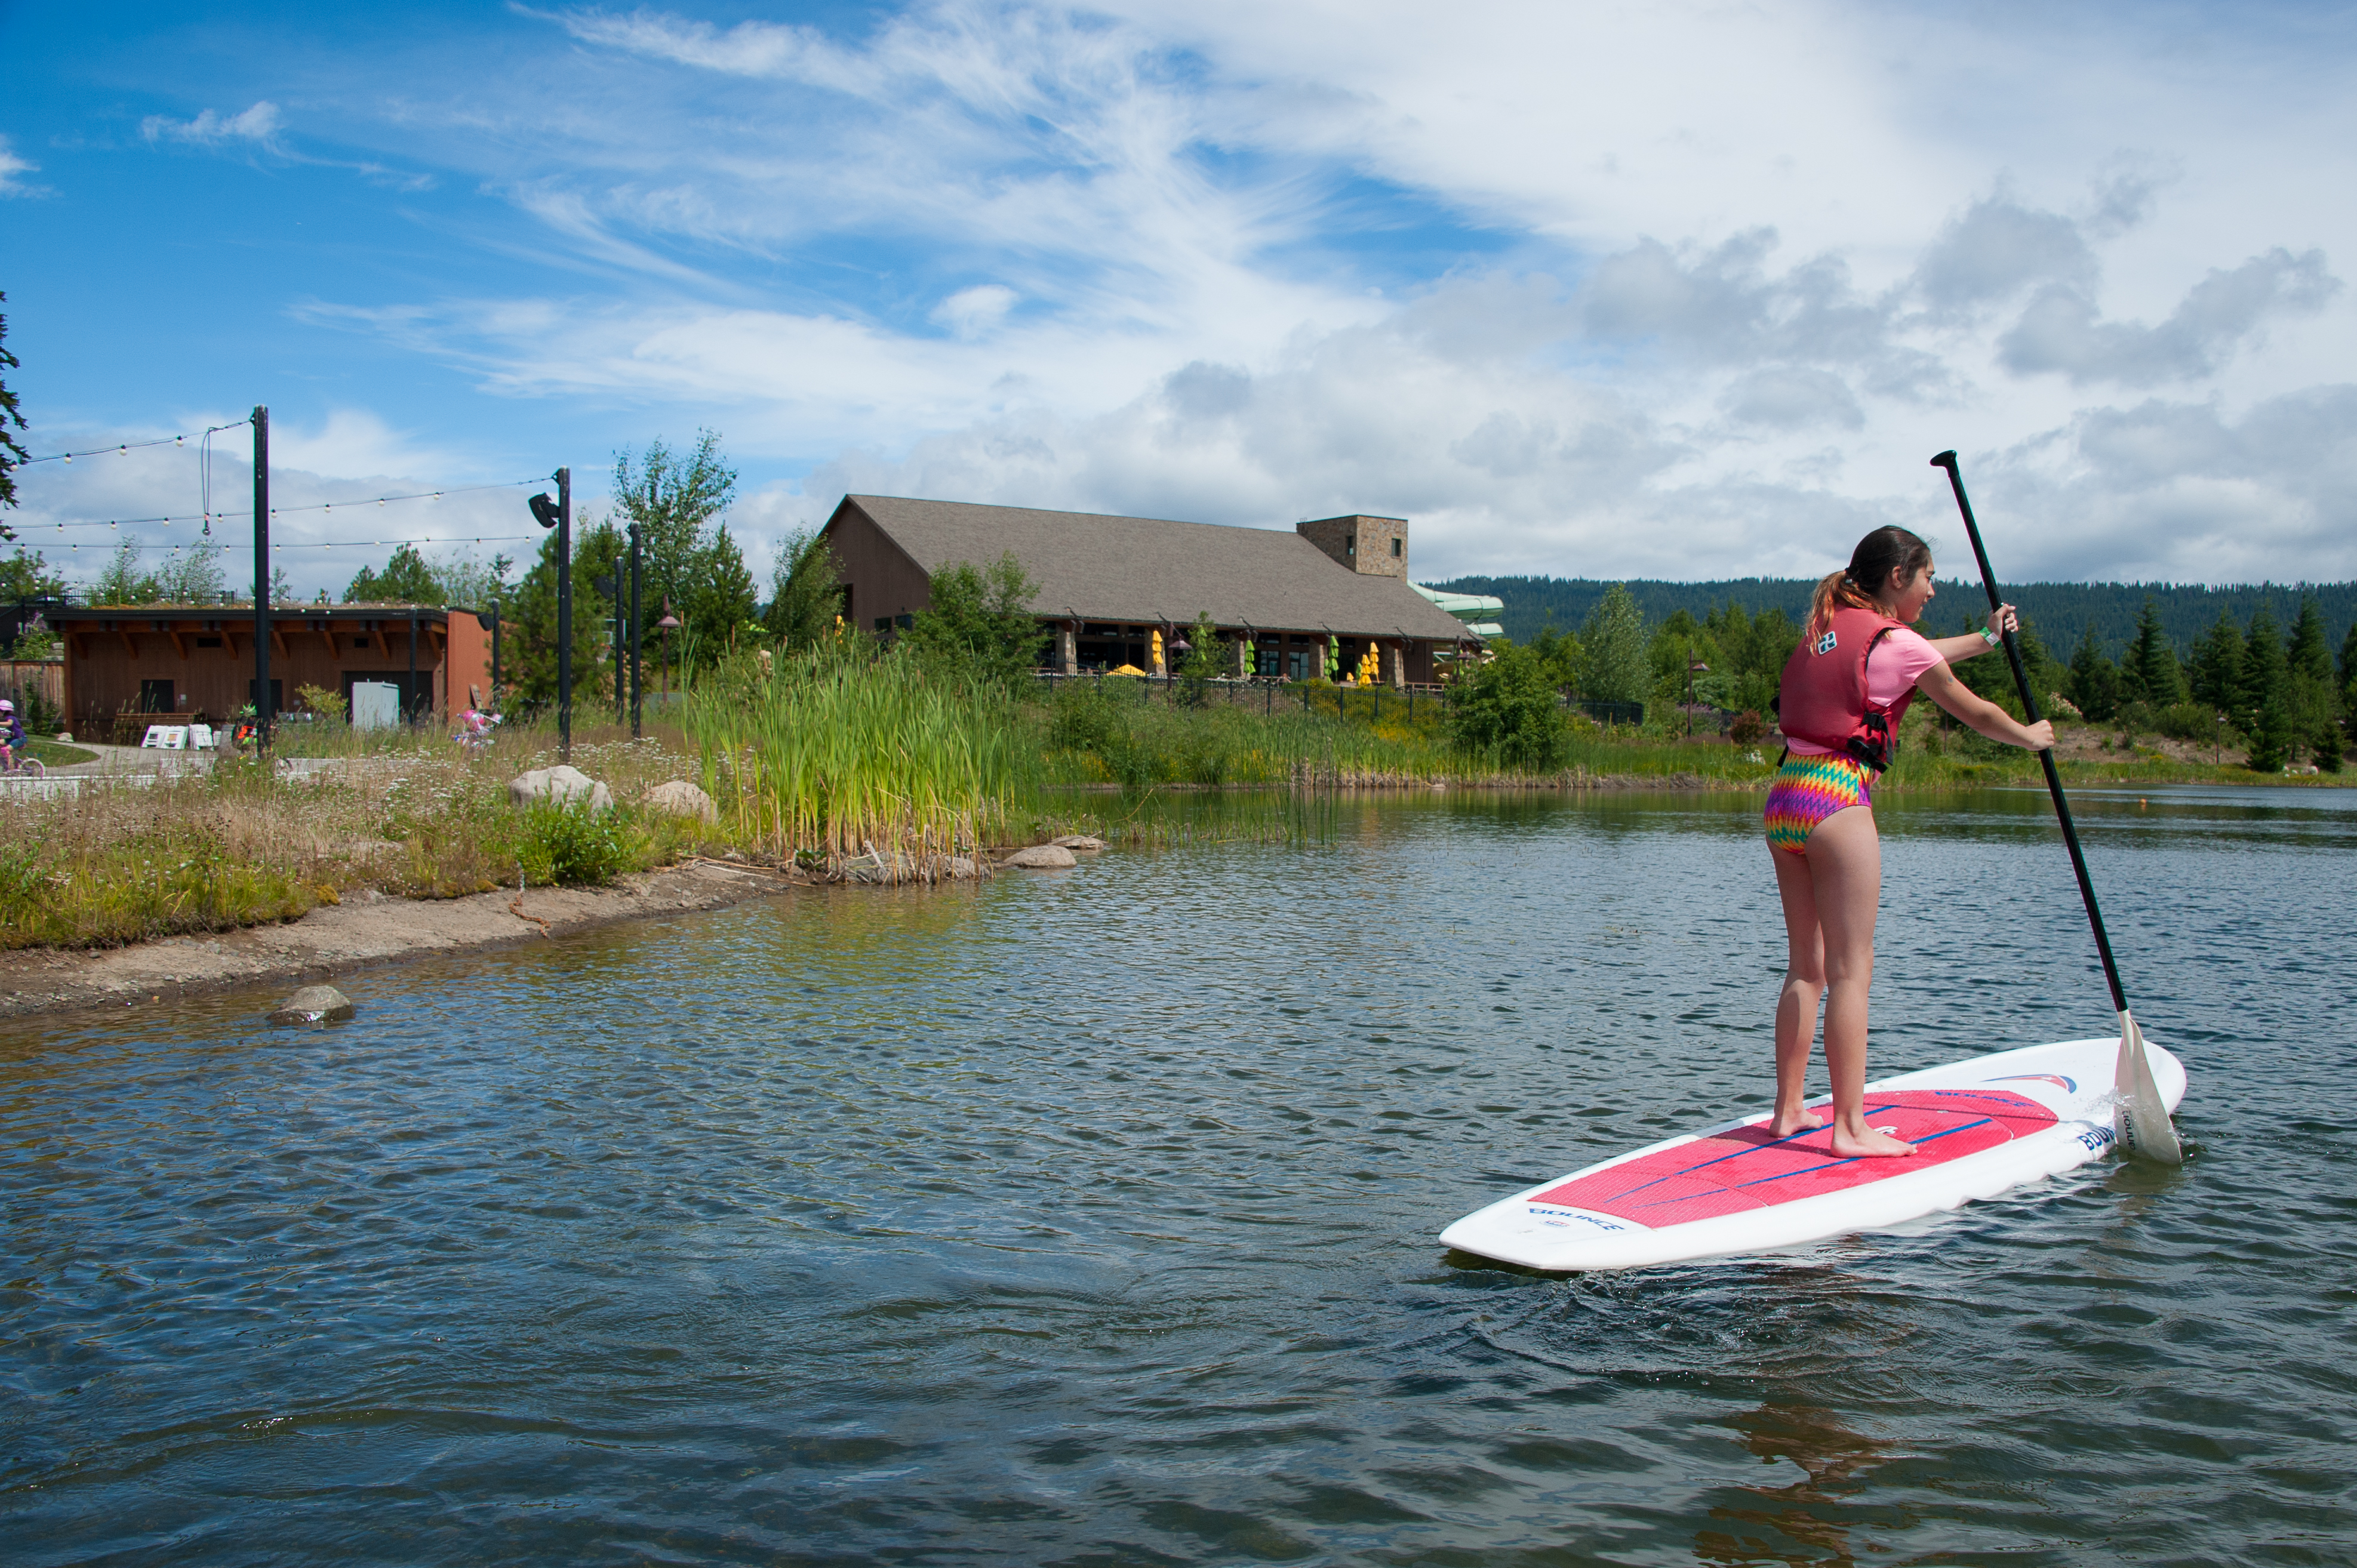 Many outdoor recreation options include paddle board, canoes, kayaks, bikes and more.